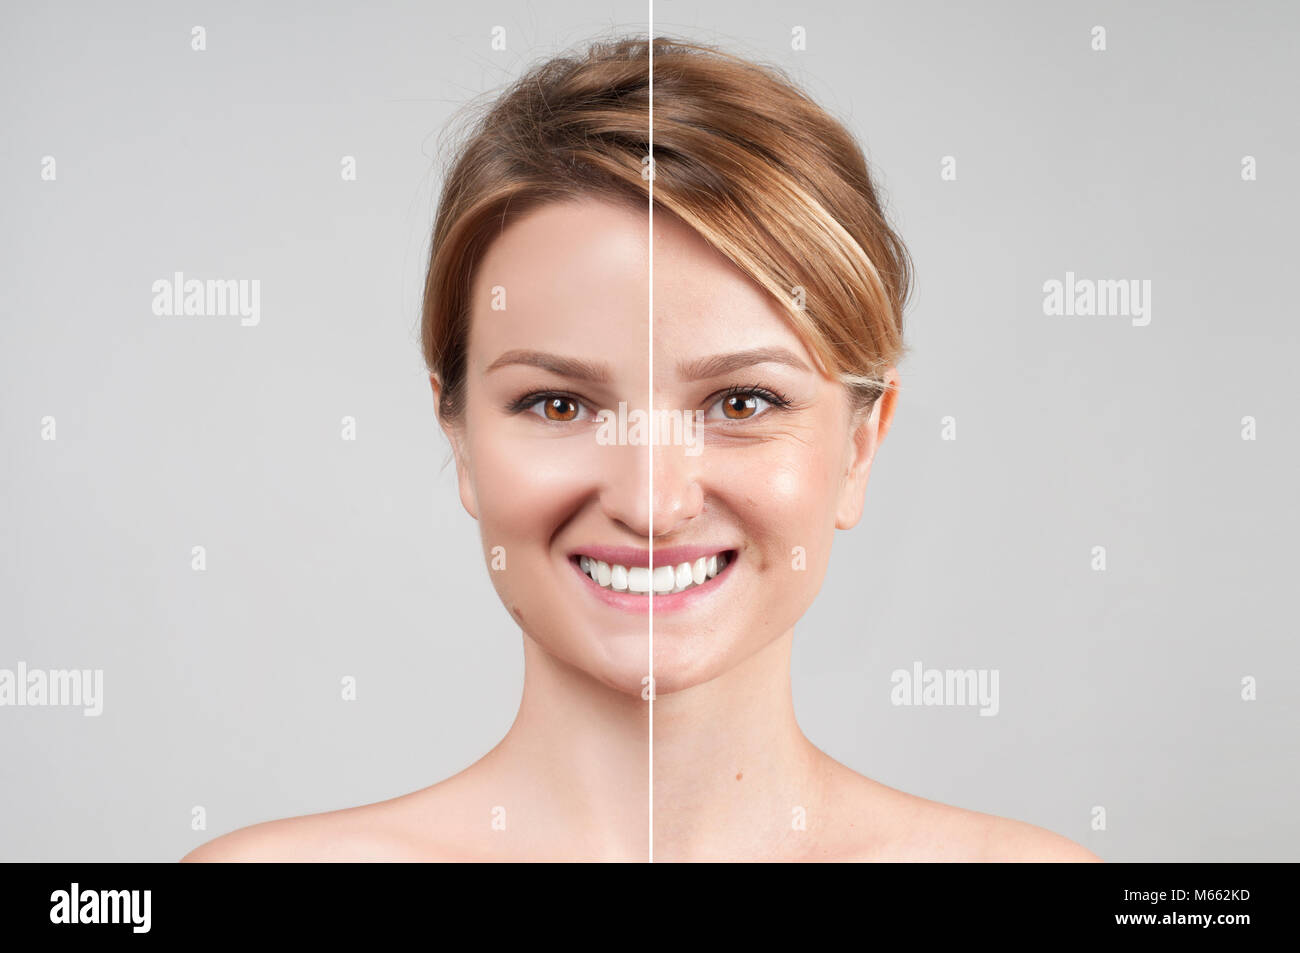 Concept of skin rejuvenation. Woman before and after cosmetic or plastic procedure, anti-age therapy - Stock Image